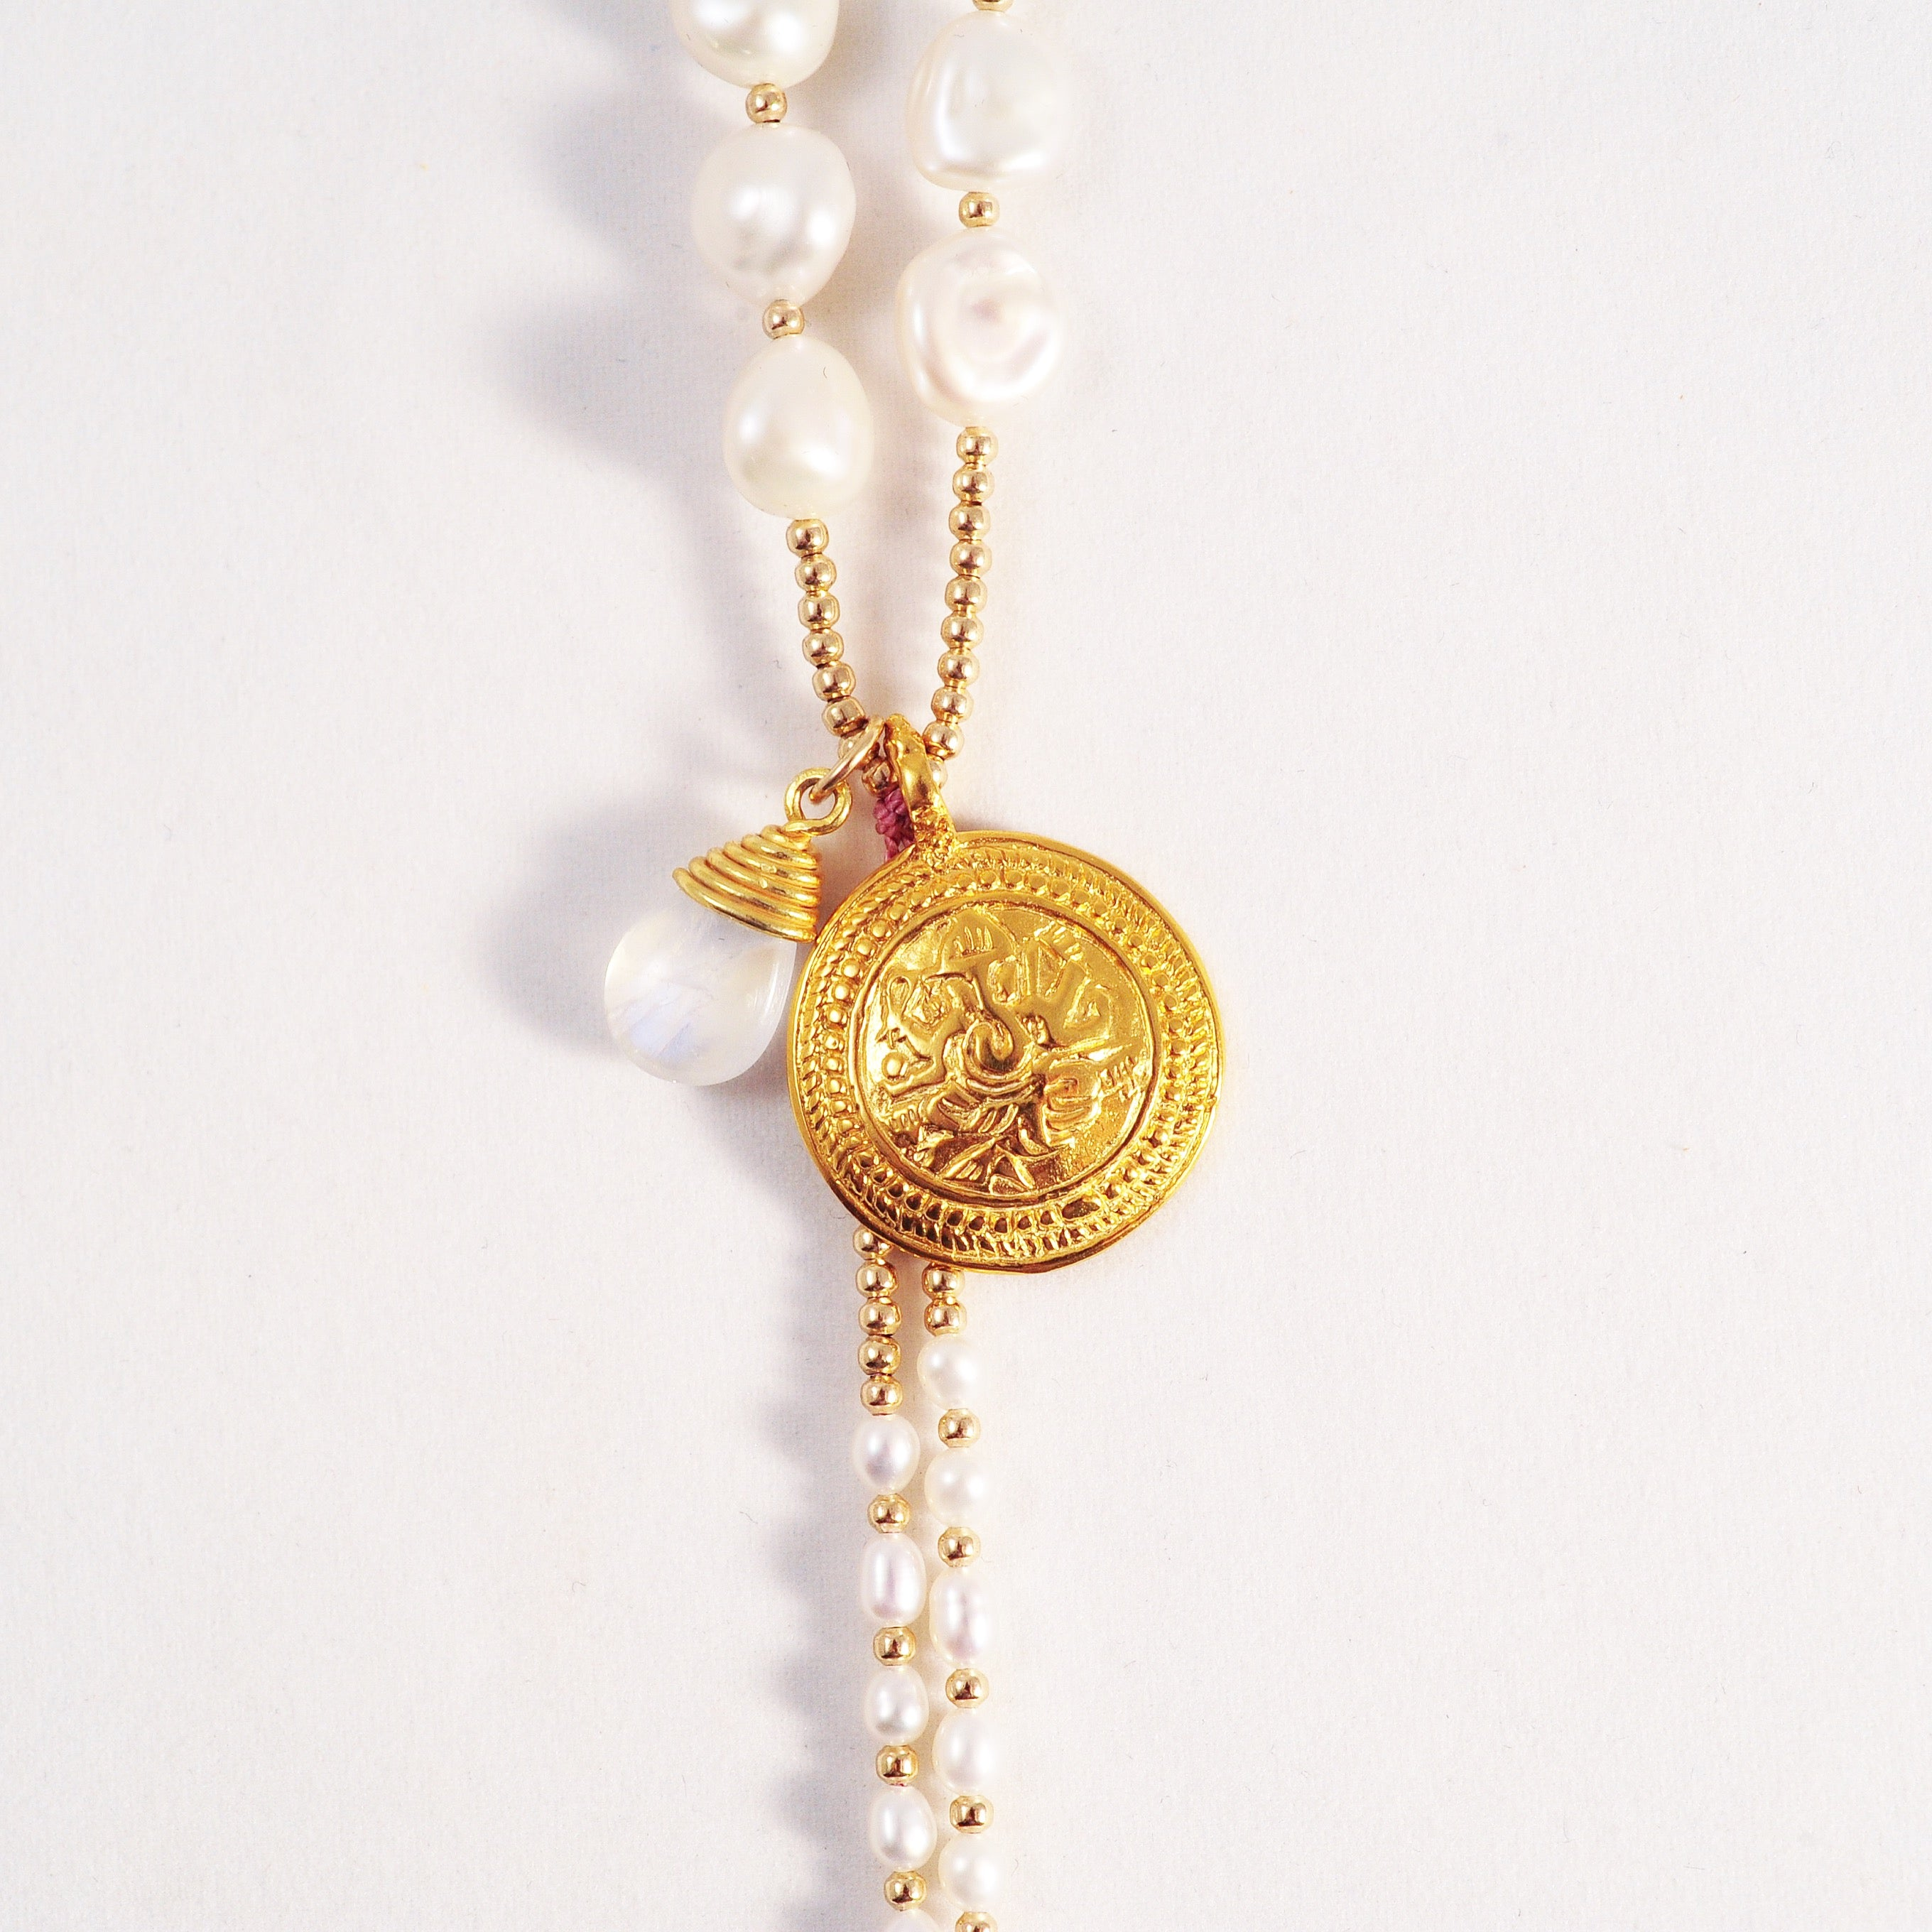 LARGE PEARL AMULET NECKLACES